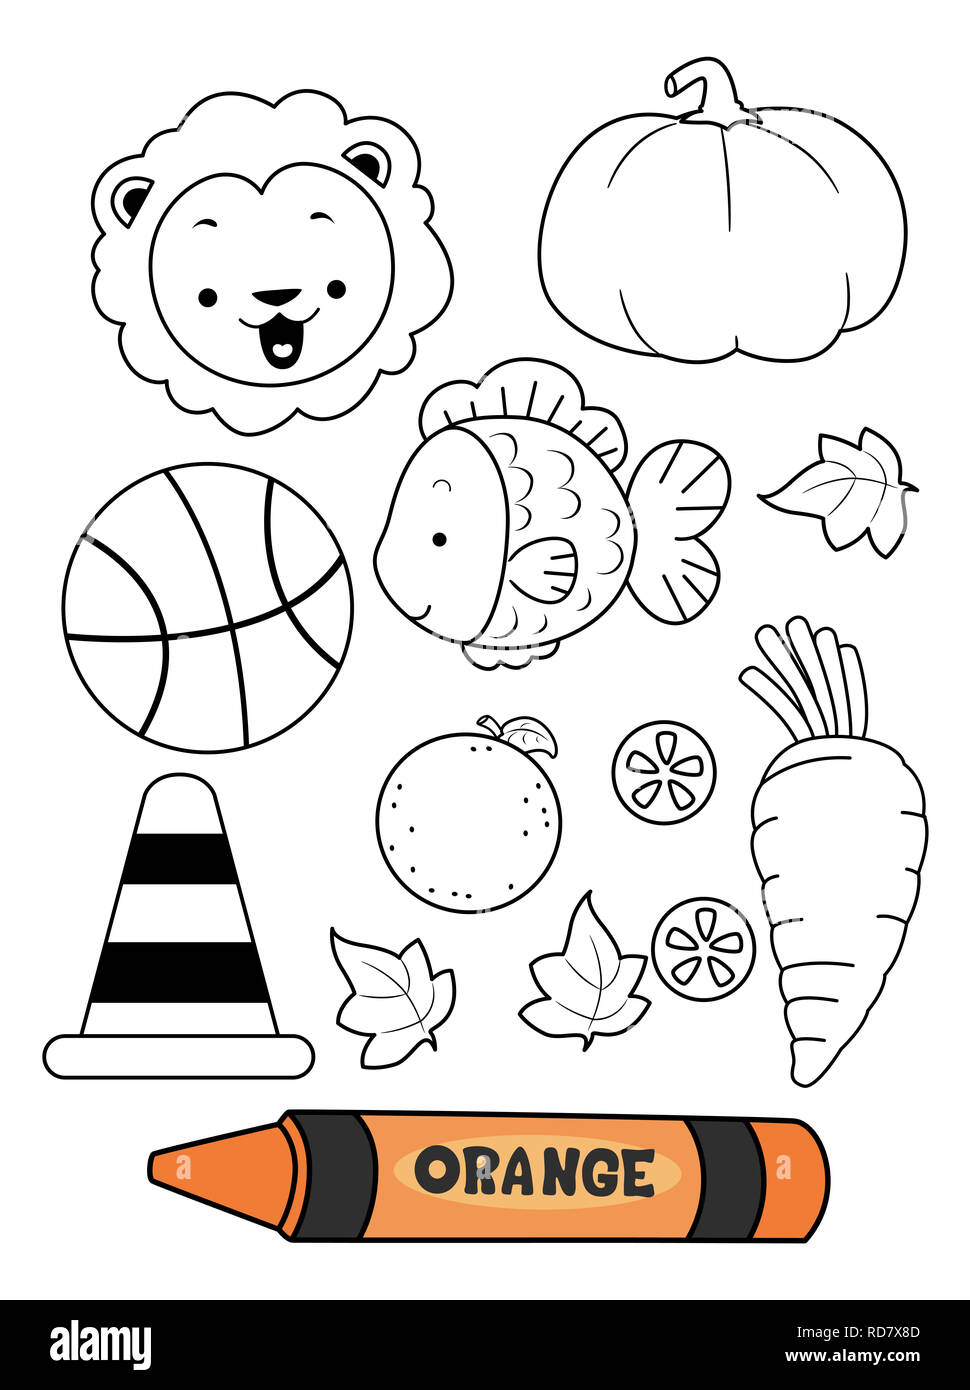 Illustration of an Orange Crayon with Orange Colored ...